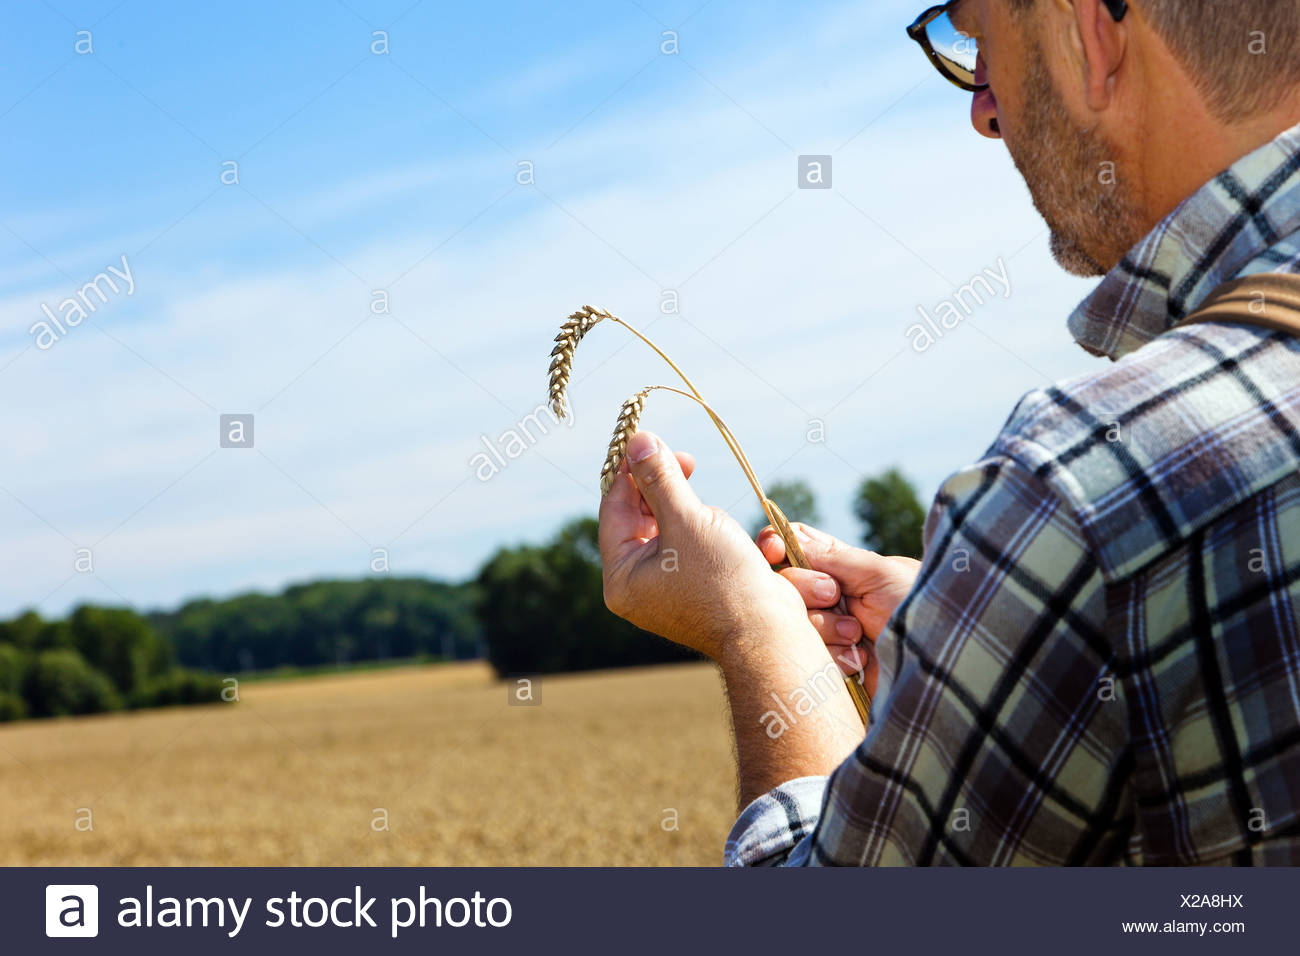 bread wheat, cultivated wheat (Triticum aestivum), farmer holding two wheat ears in the hands over a mature field checking the quality, Germany - Stock Image